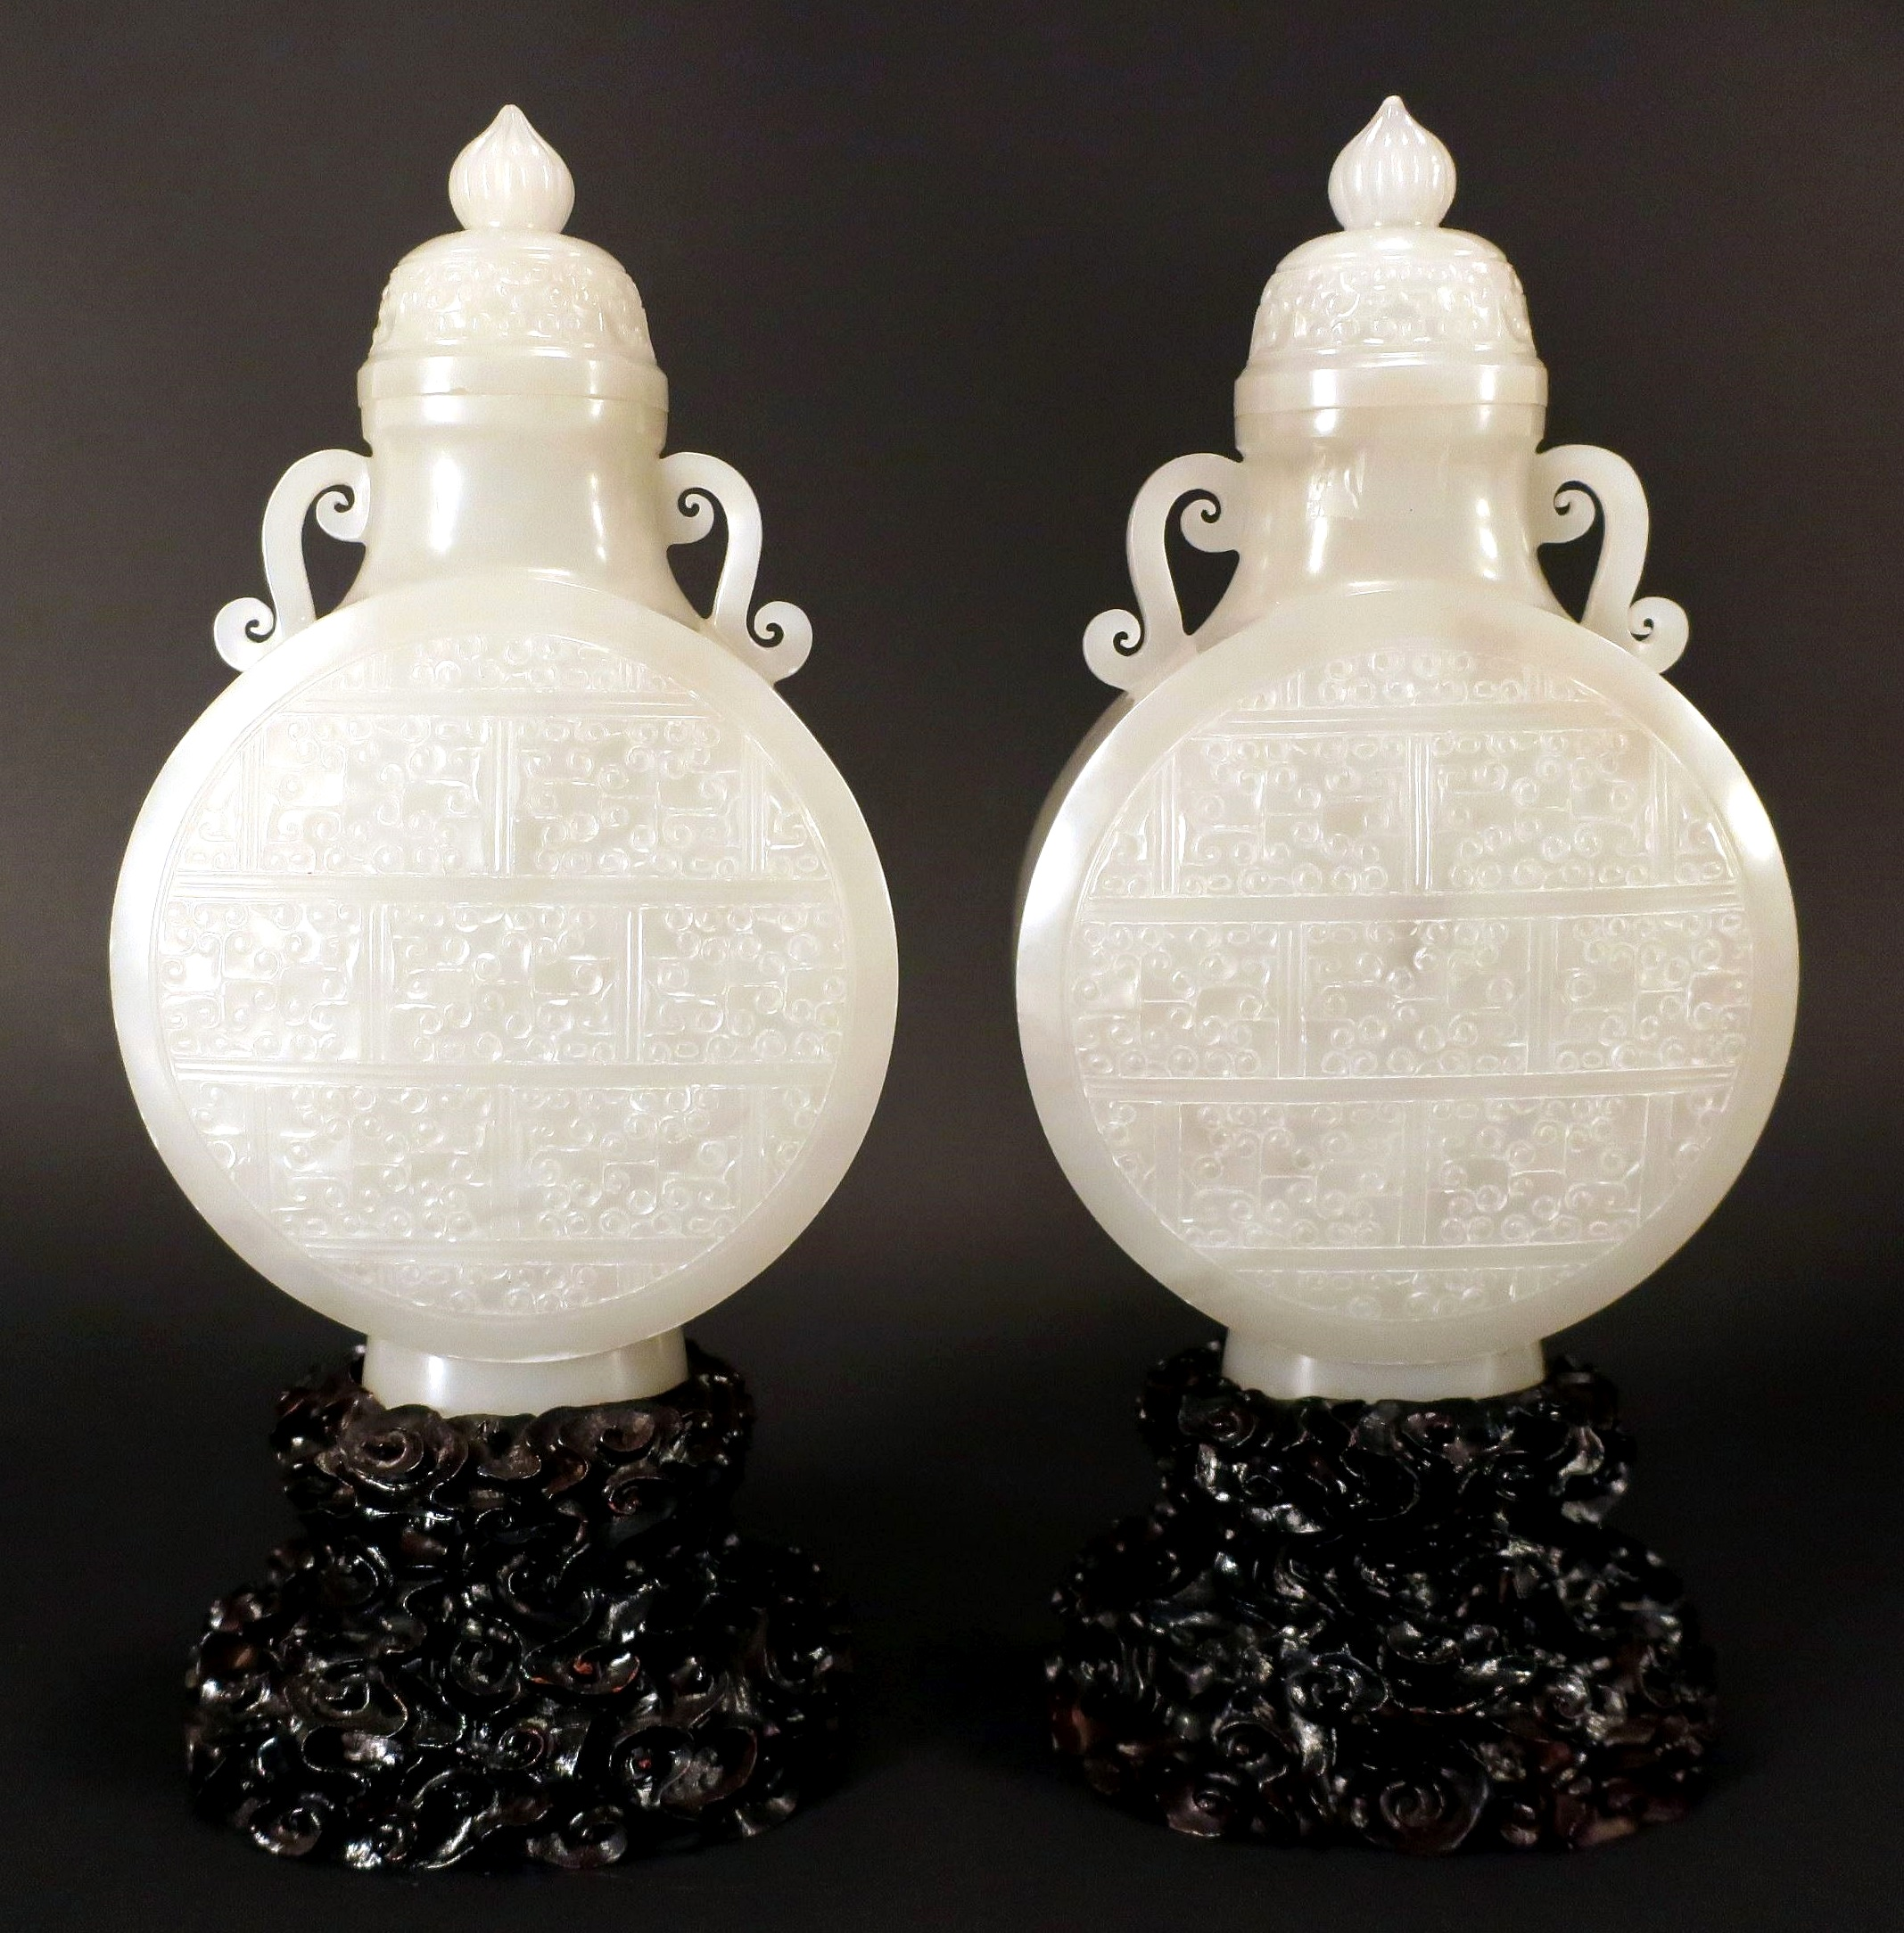 Pair Of Chinese White Jade Vases With Covers. Sold For $14,375